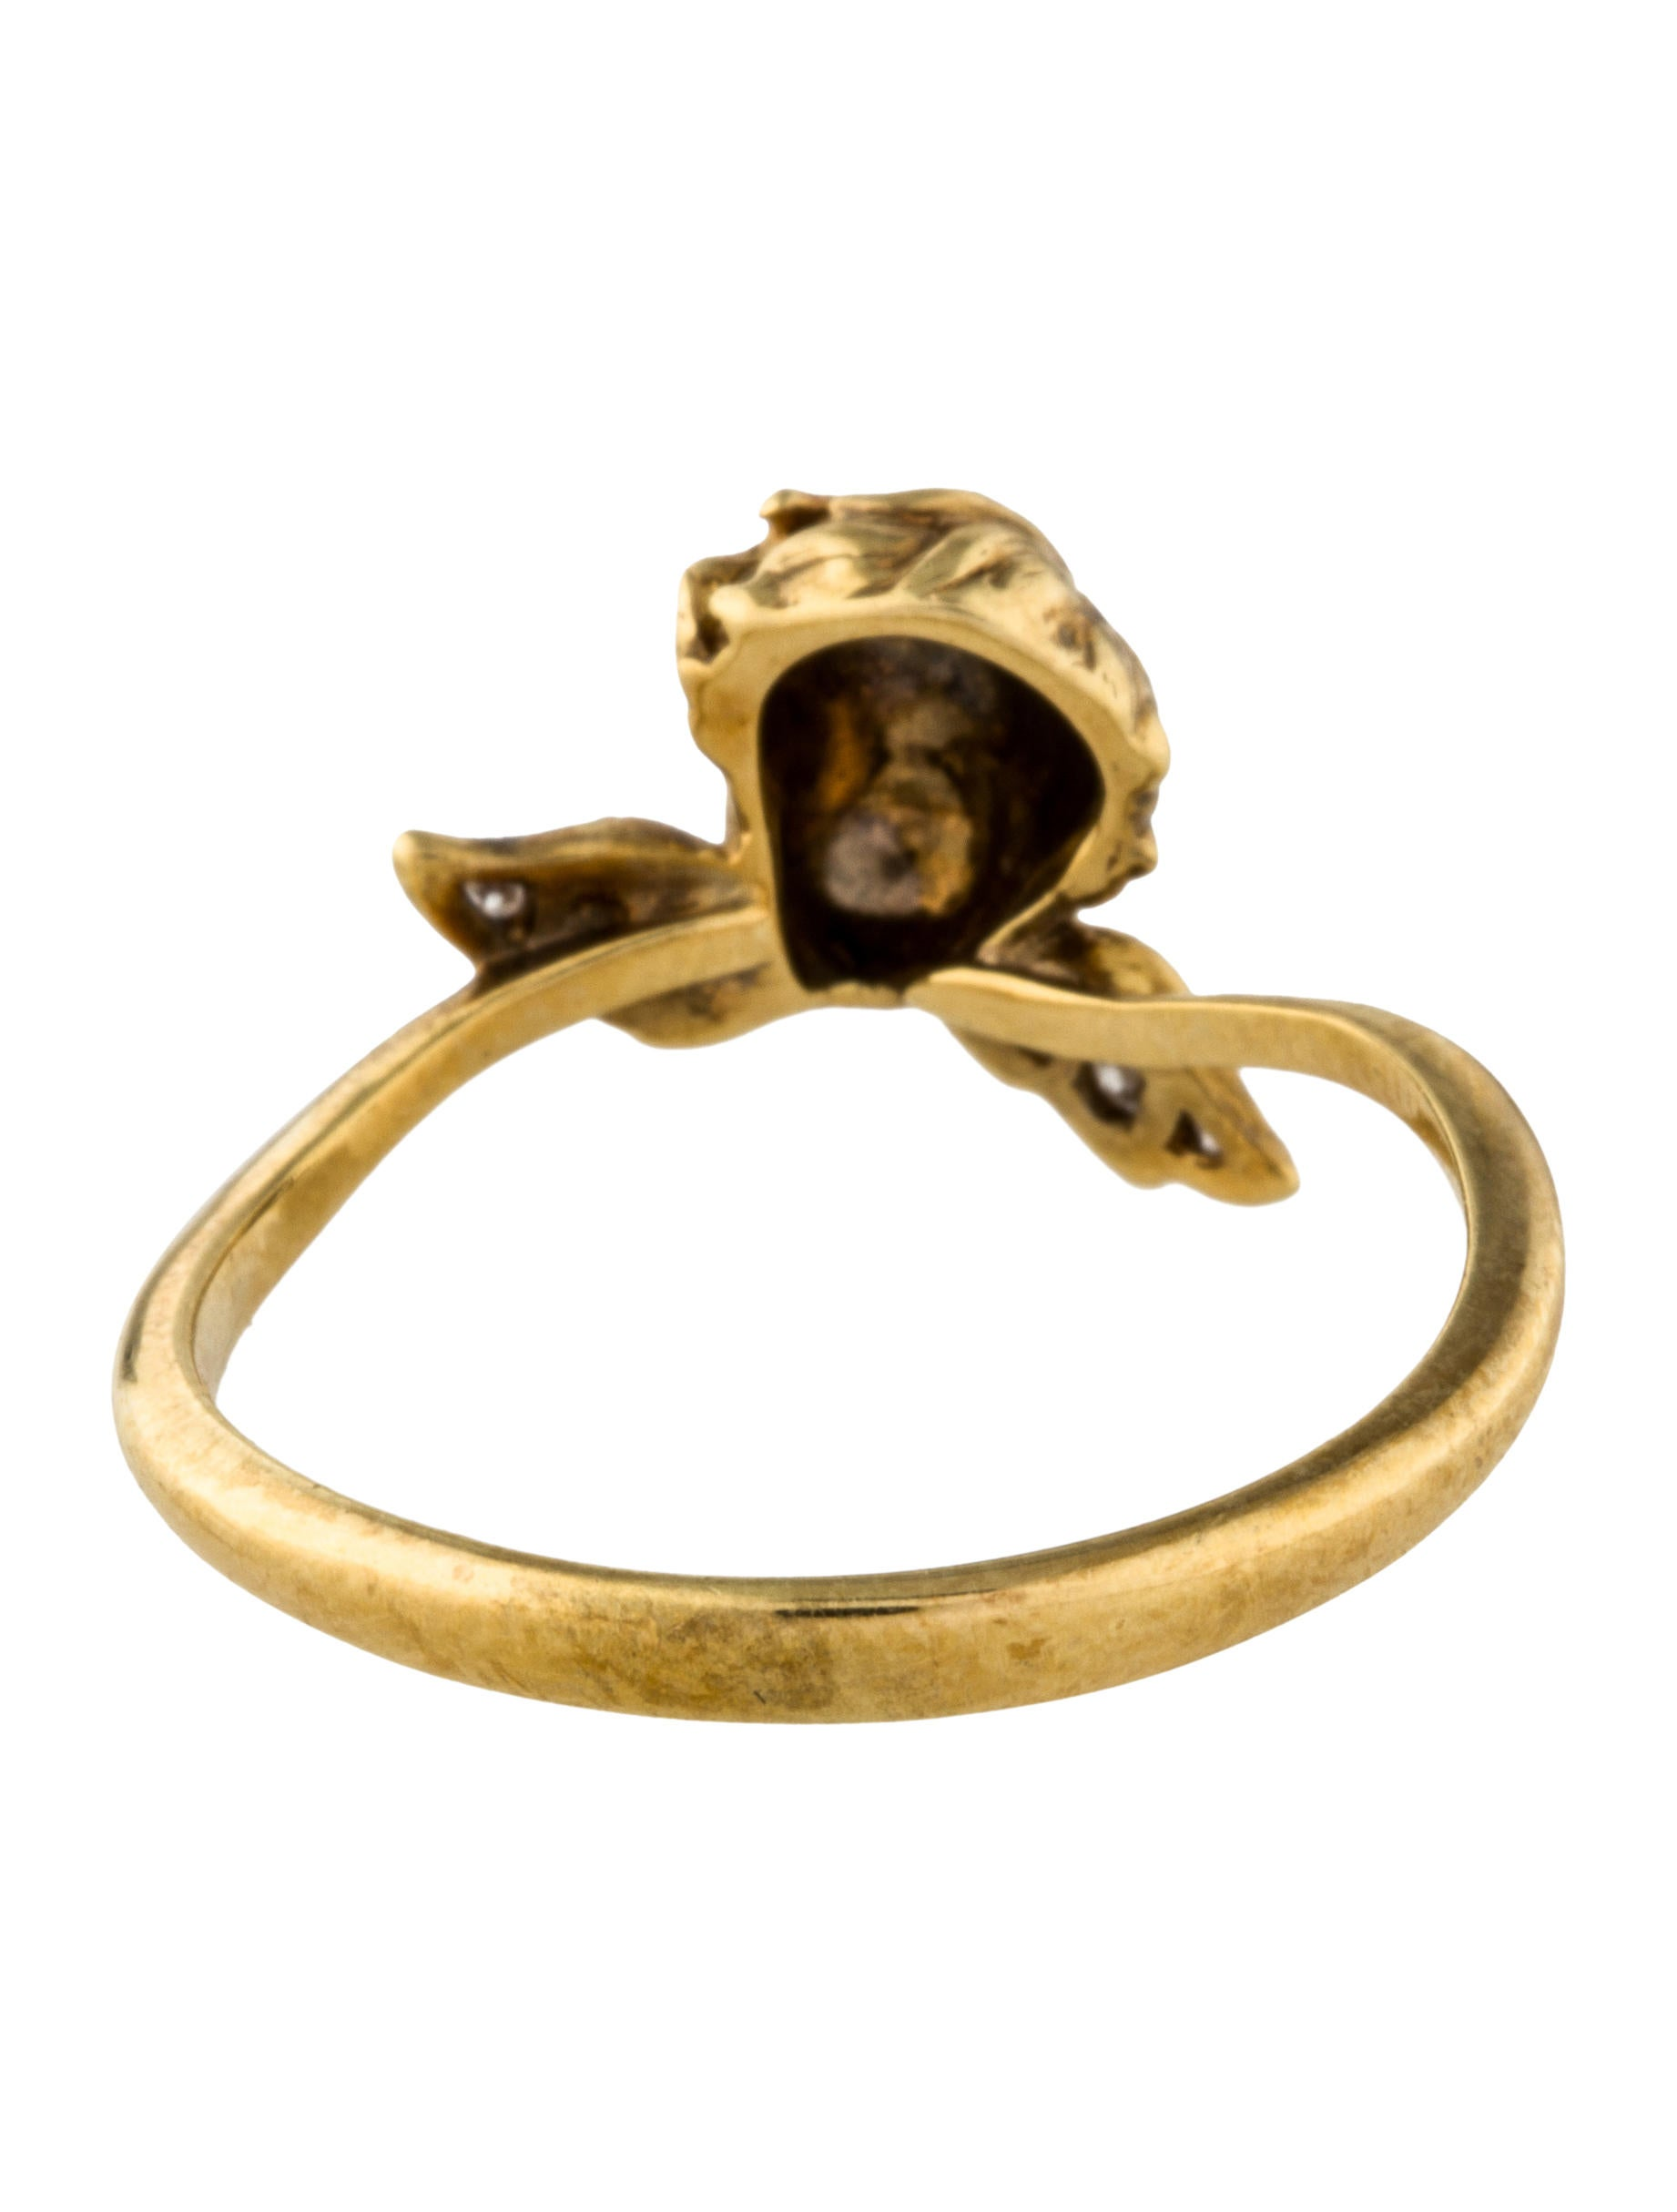 gaelle khouri engagement rings by auverture bronze ring jewellery imbrog fine shop imbroglio